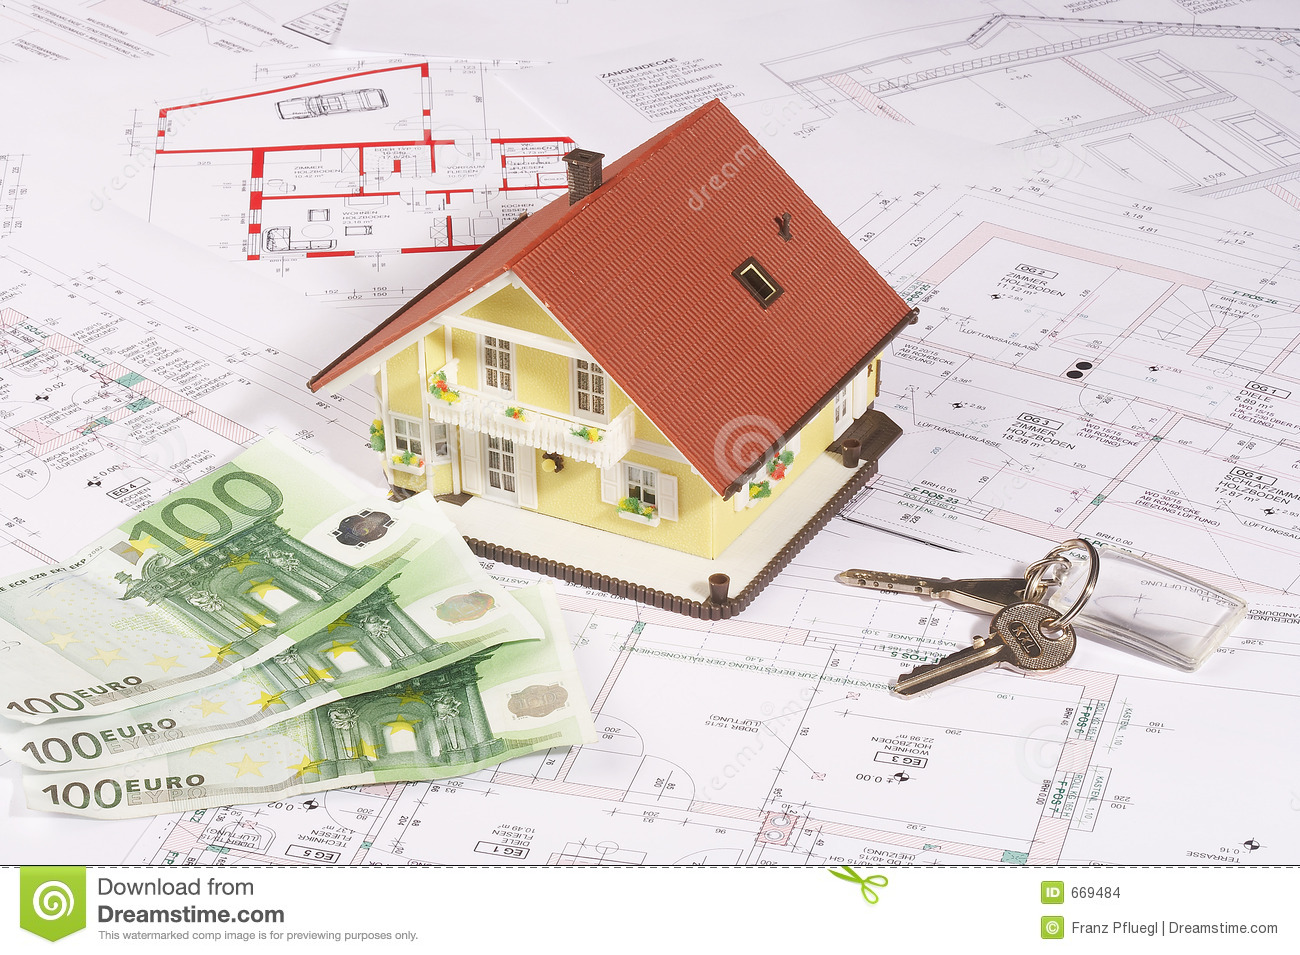 My house and money